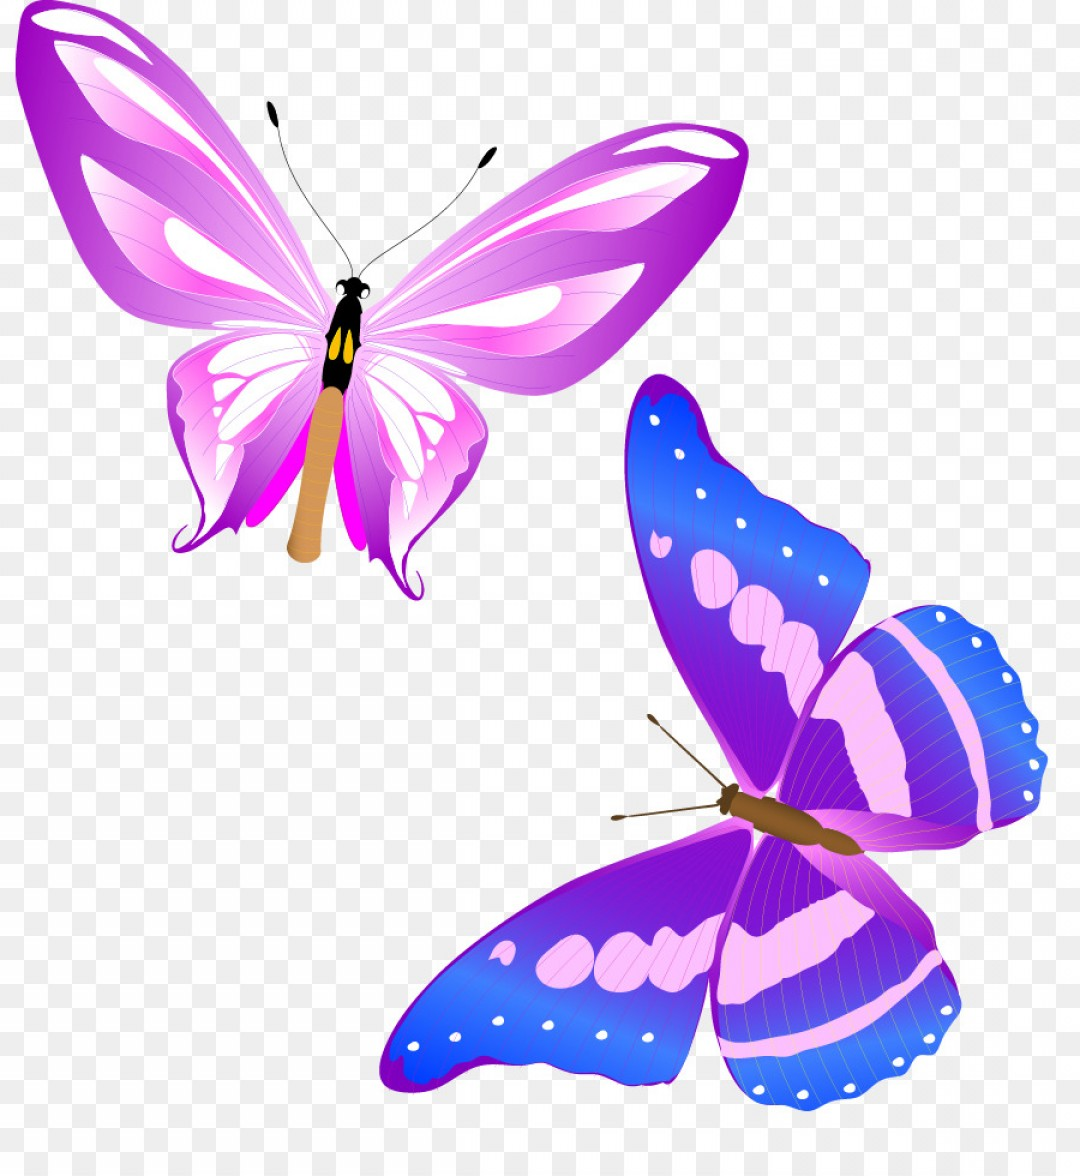 Butterly Vector: Png Monarch Butterfly Insect Clip Art Fun Colorful But